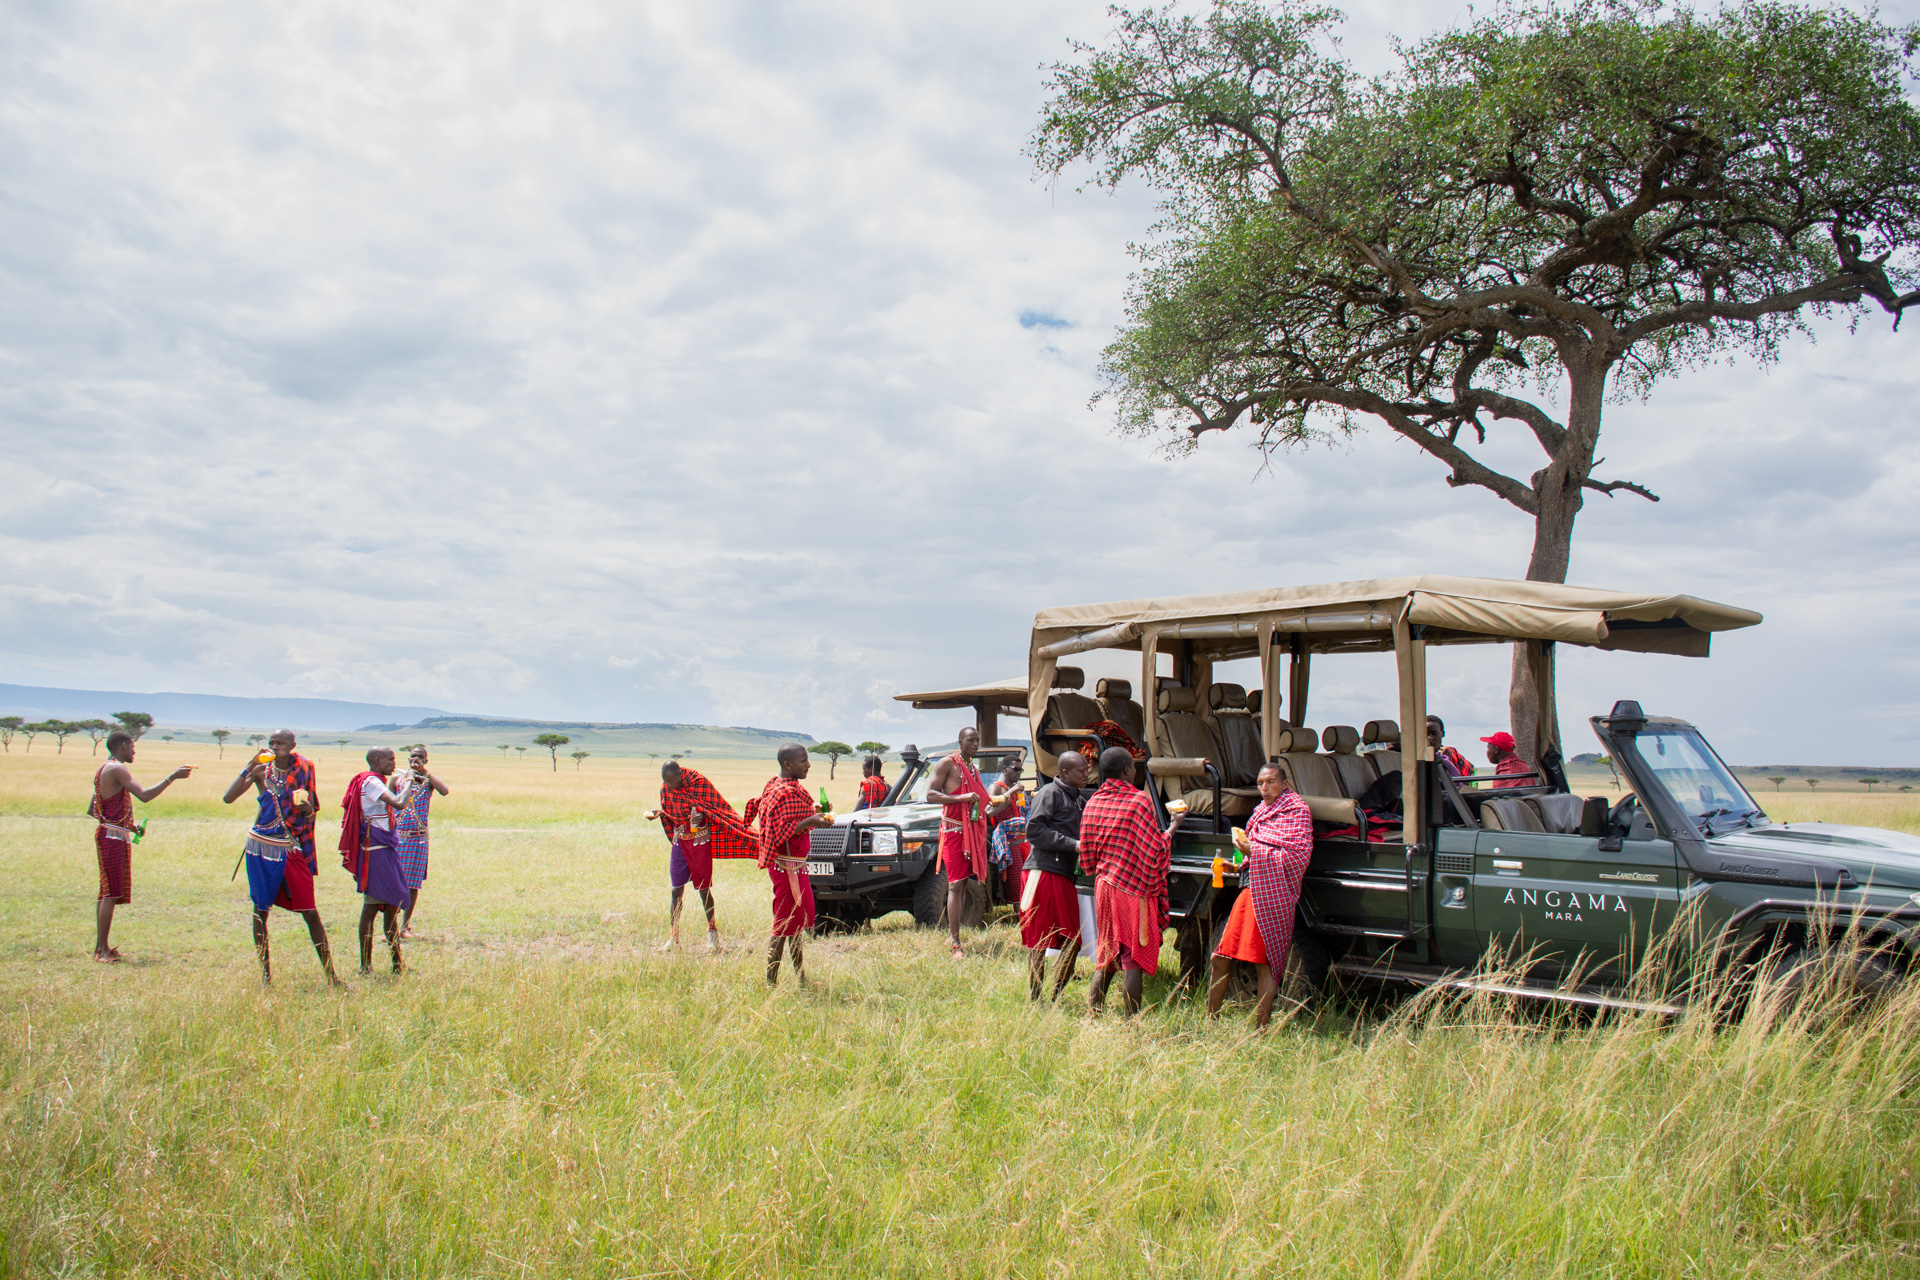 Lunchtime in the Mara